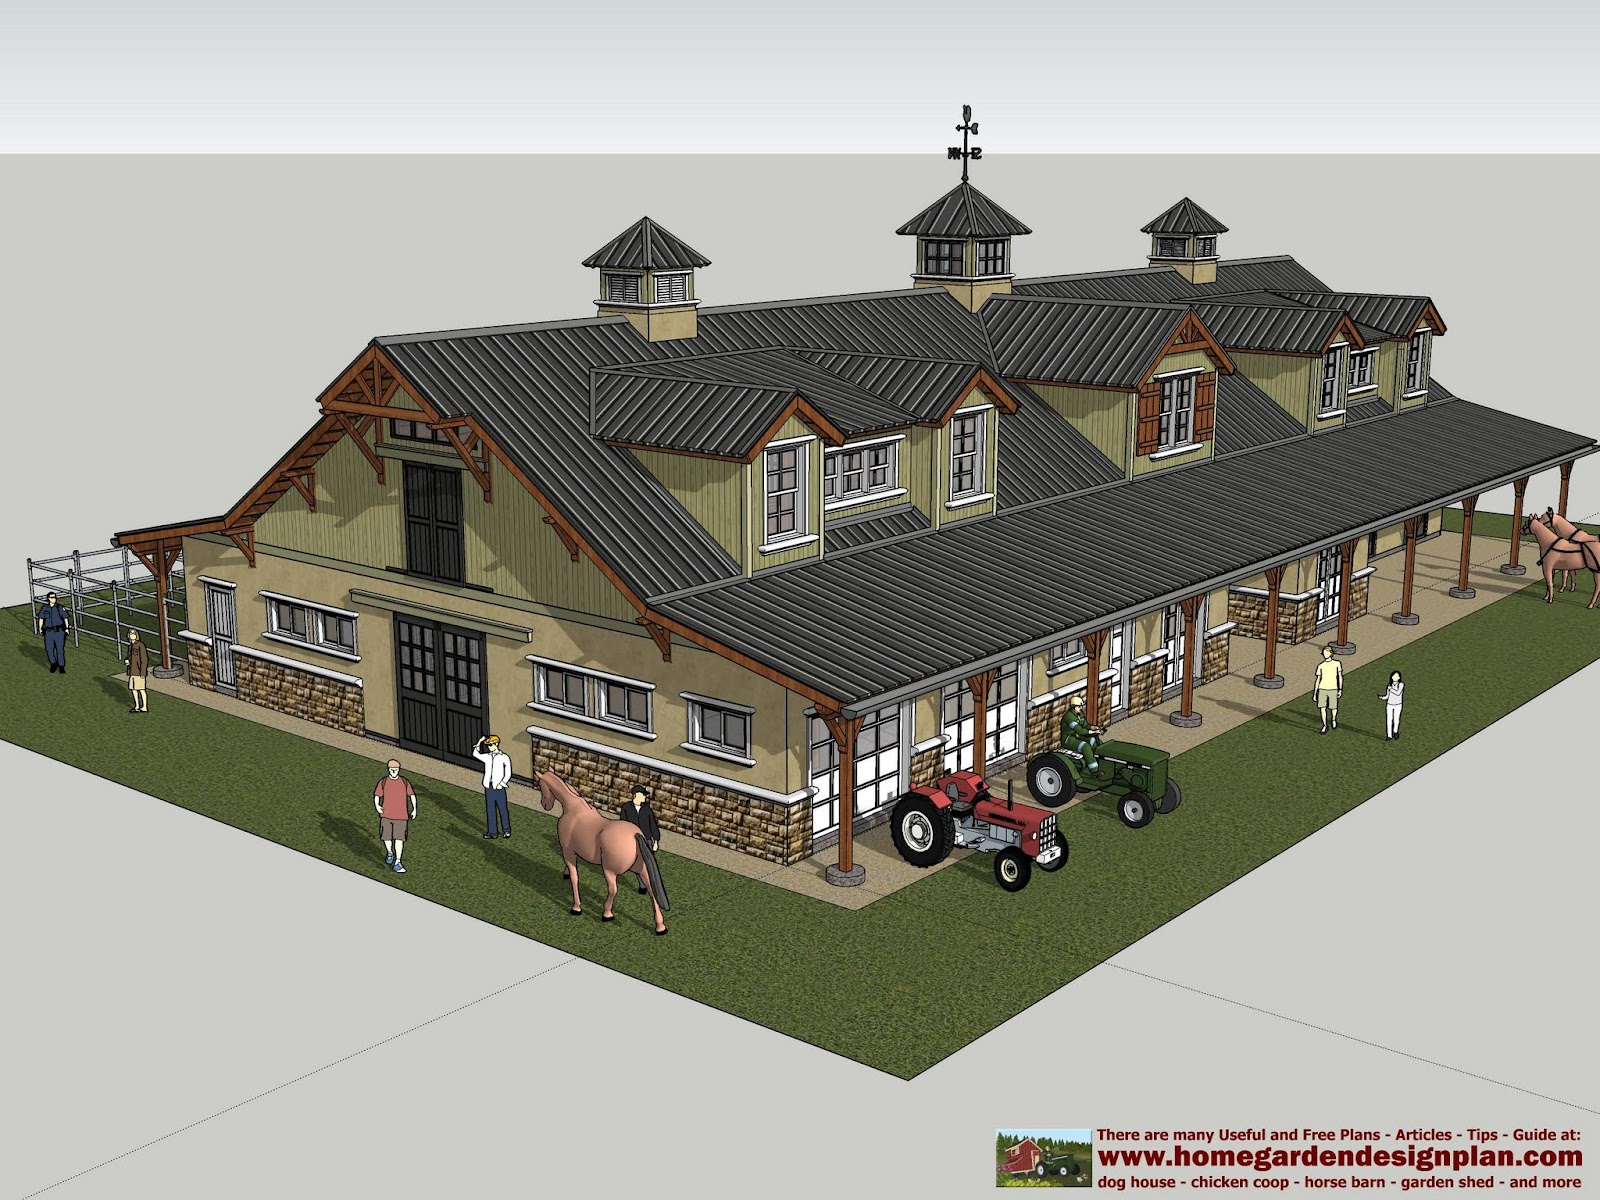 Home garden plans hb100 horse barn plans horse barn Barn designs